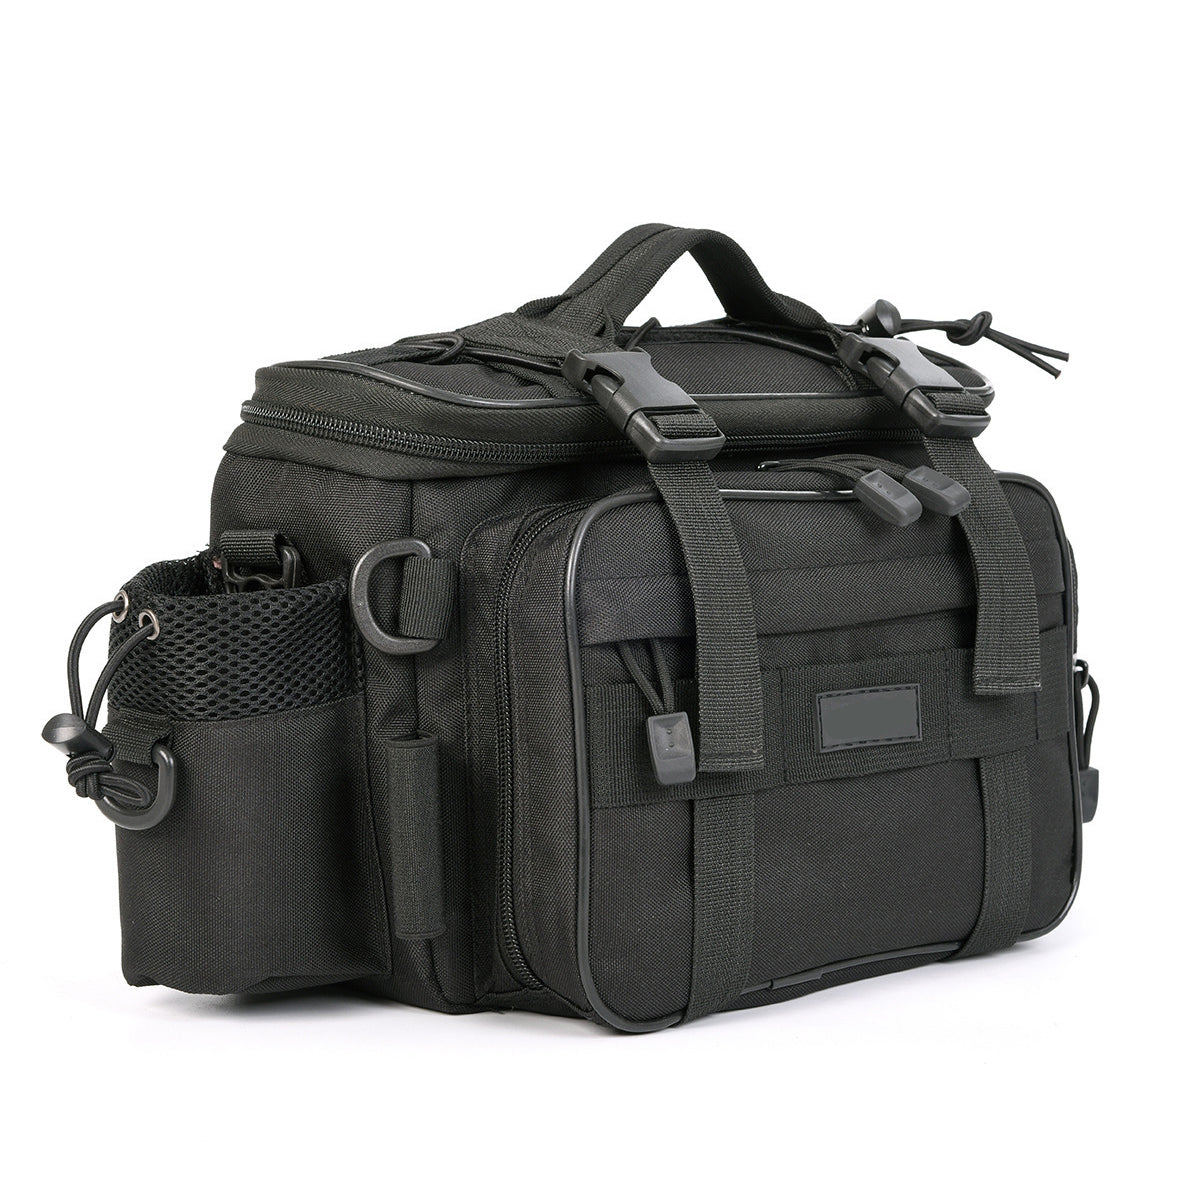 Water Resistant Outdoor Photography Tackle Bag Waist Shoulder LurePack